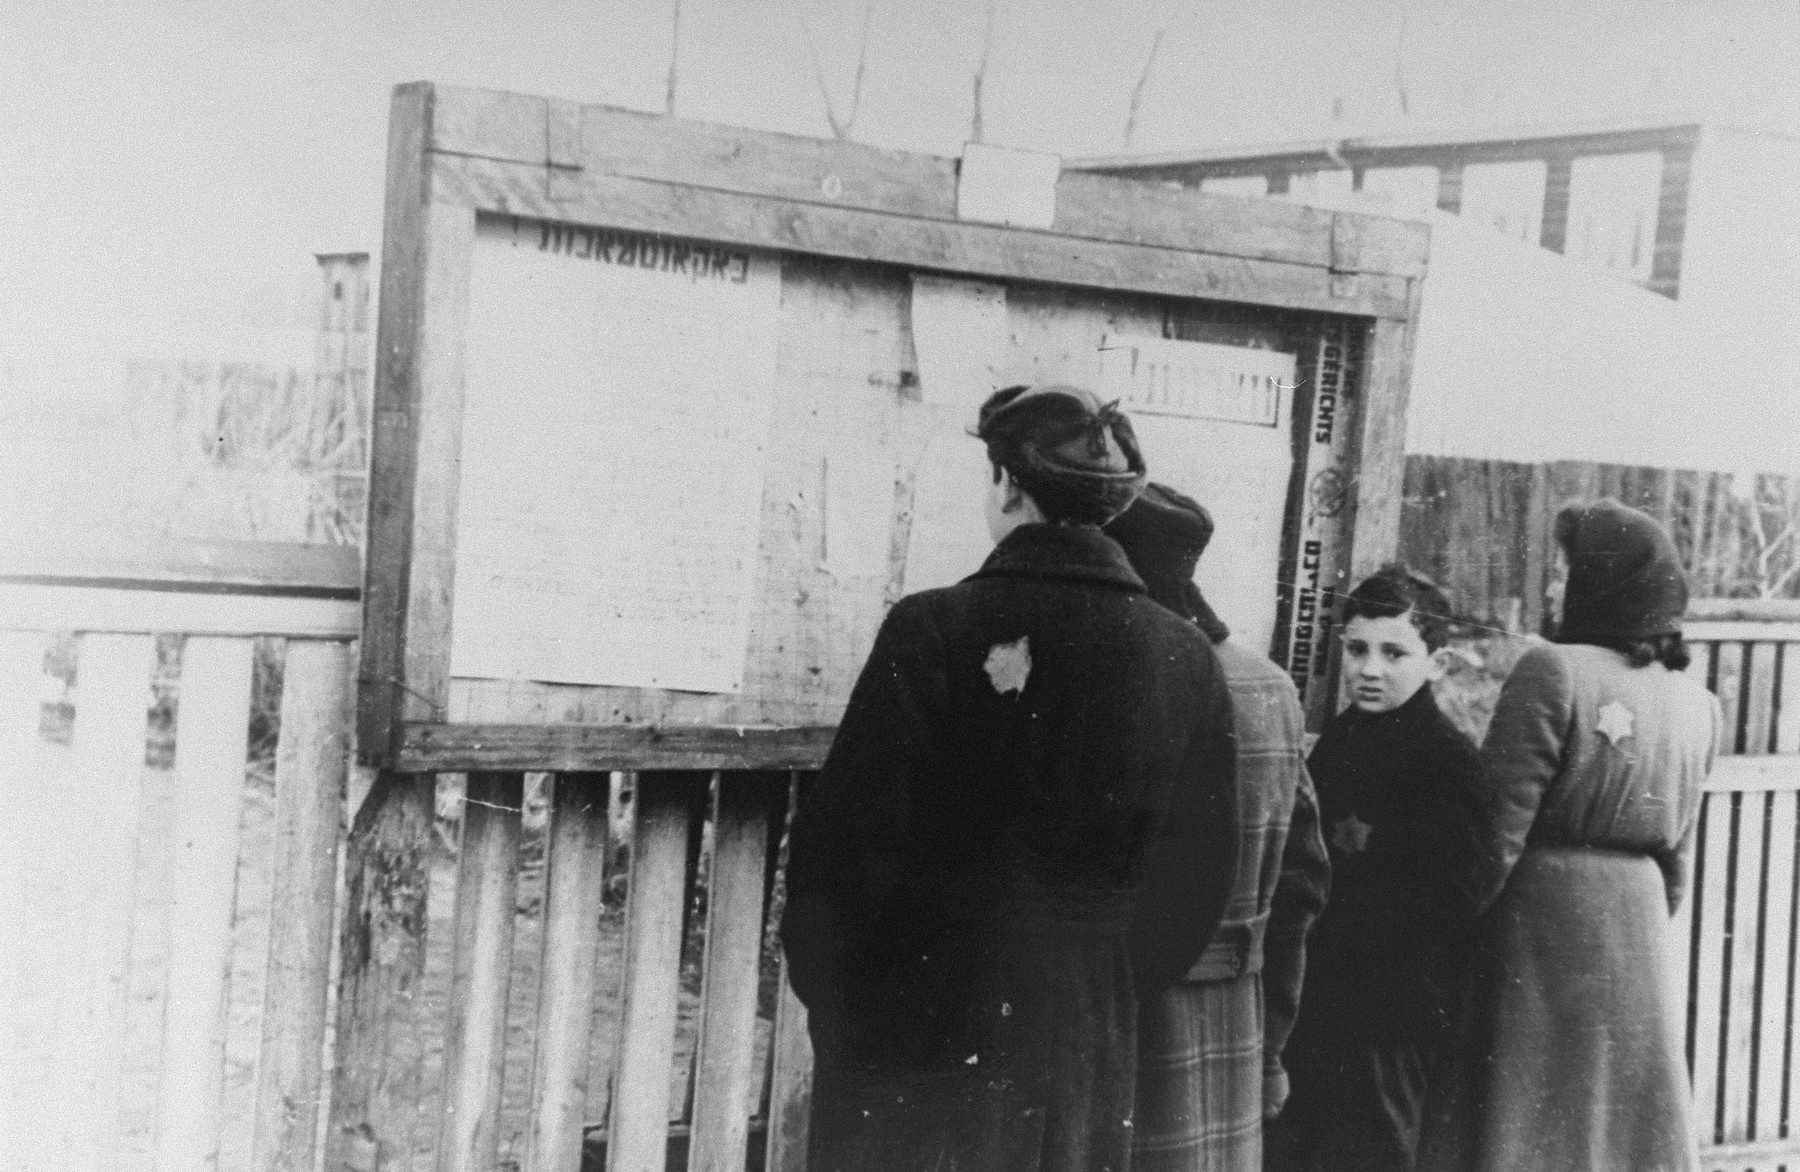 A small group of Jews reads the announcements posted by the Jewish Council in a display box on a street in the Kovno ghetto.   The boy on the right is probably Yankele Bergman, one of the child messengers of the Jewish Council.